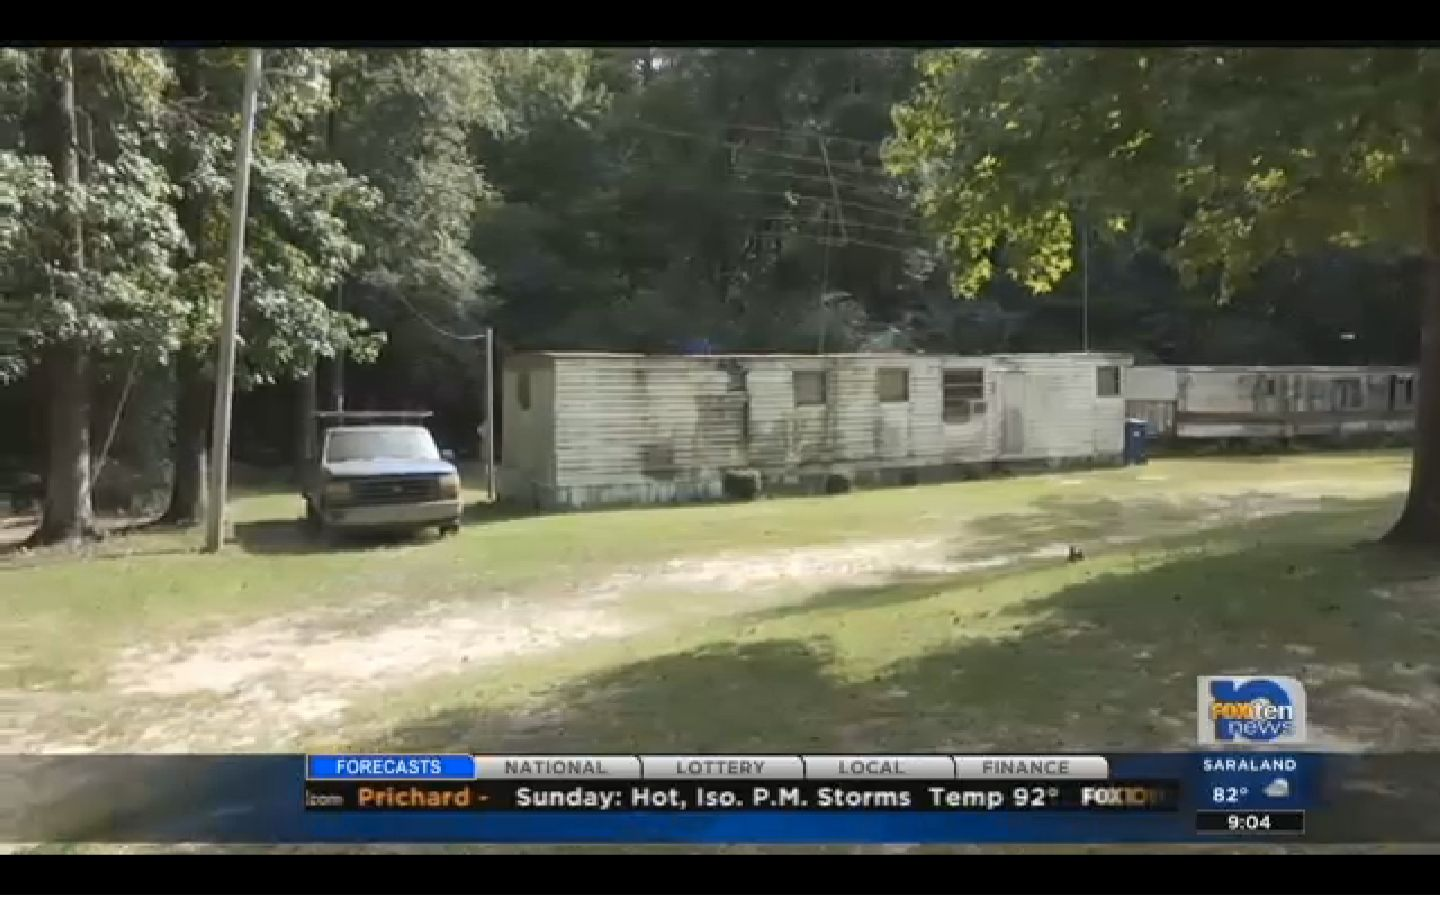 A 911 call about a thwarted break-in at this Mobile, Alabama home led to the discovery of a dead man taped to a tree.